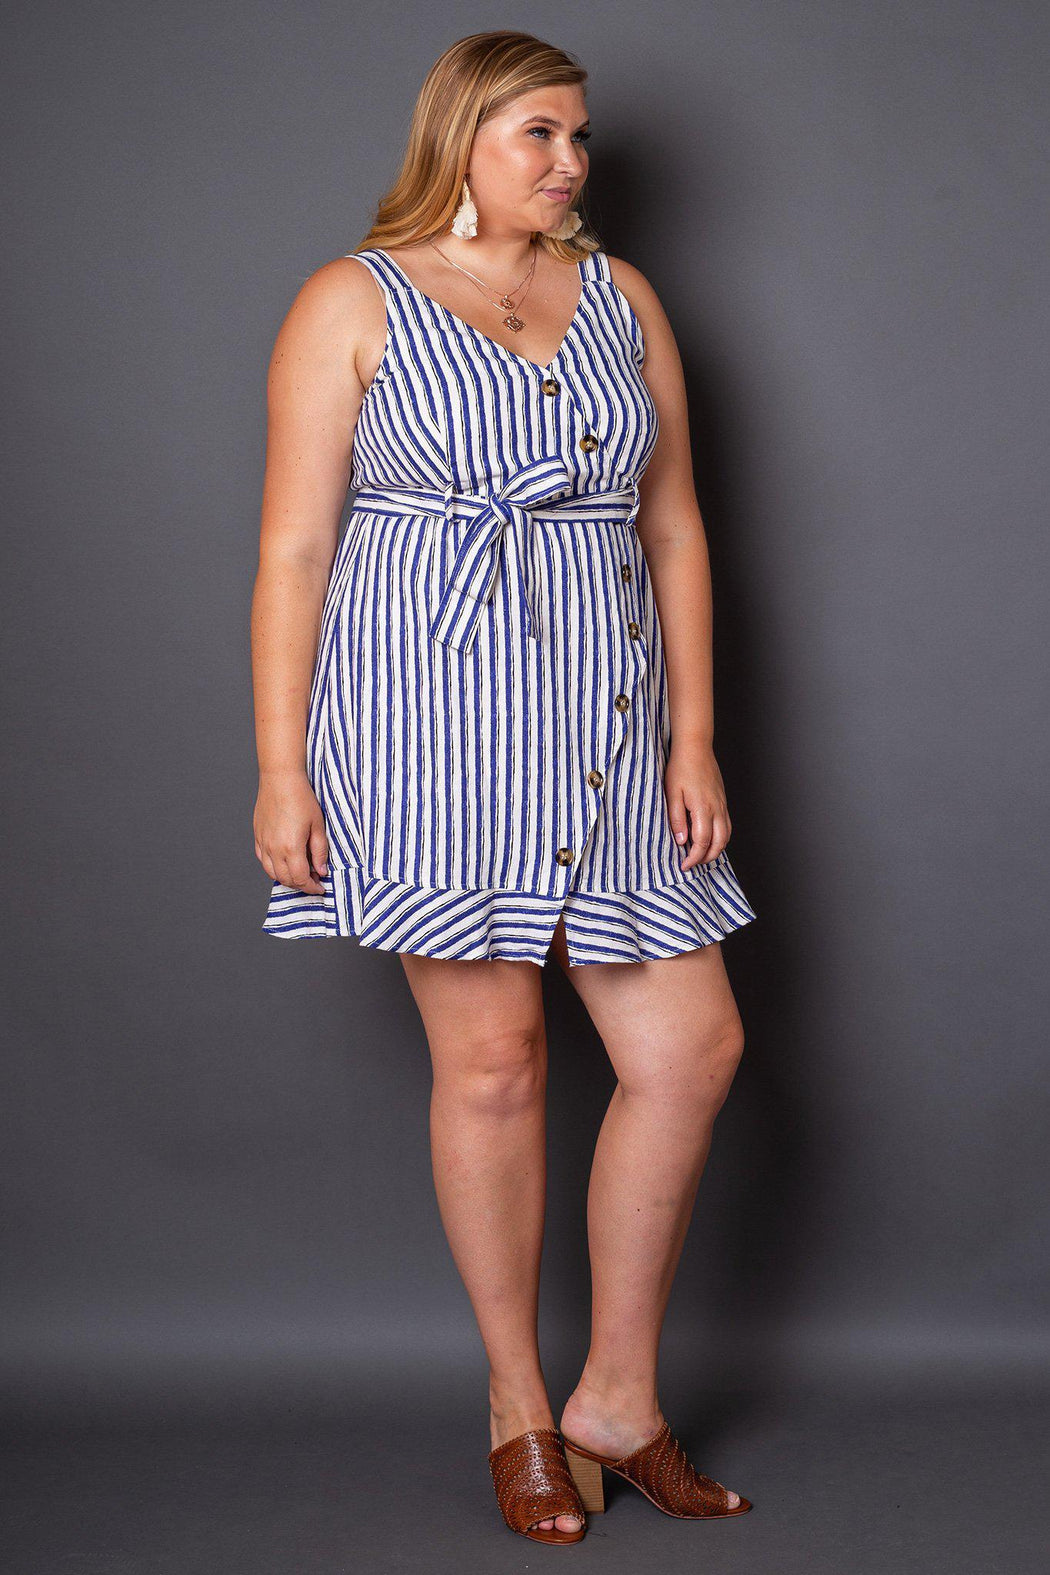 Sabine Blue and White Striped Button Sun Dress- 3/4 view on model